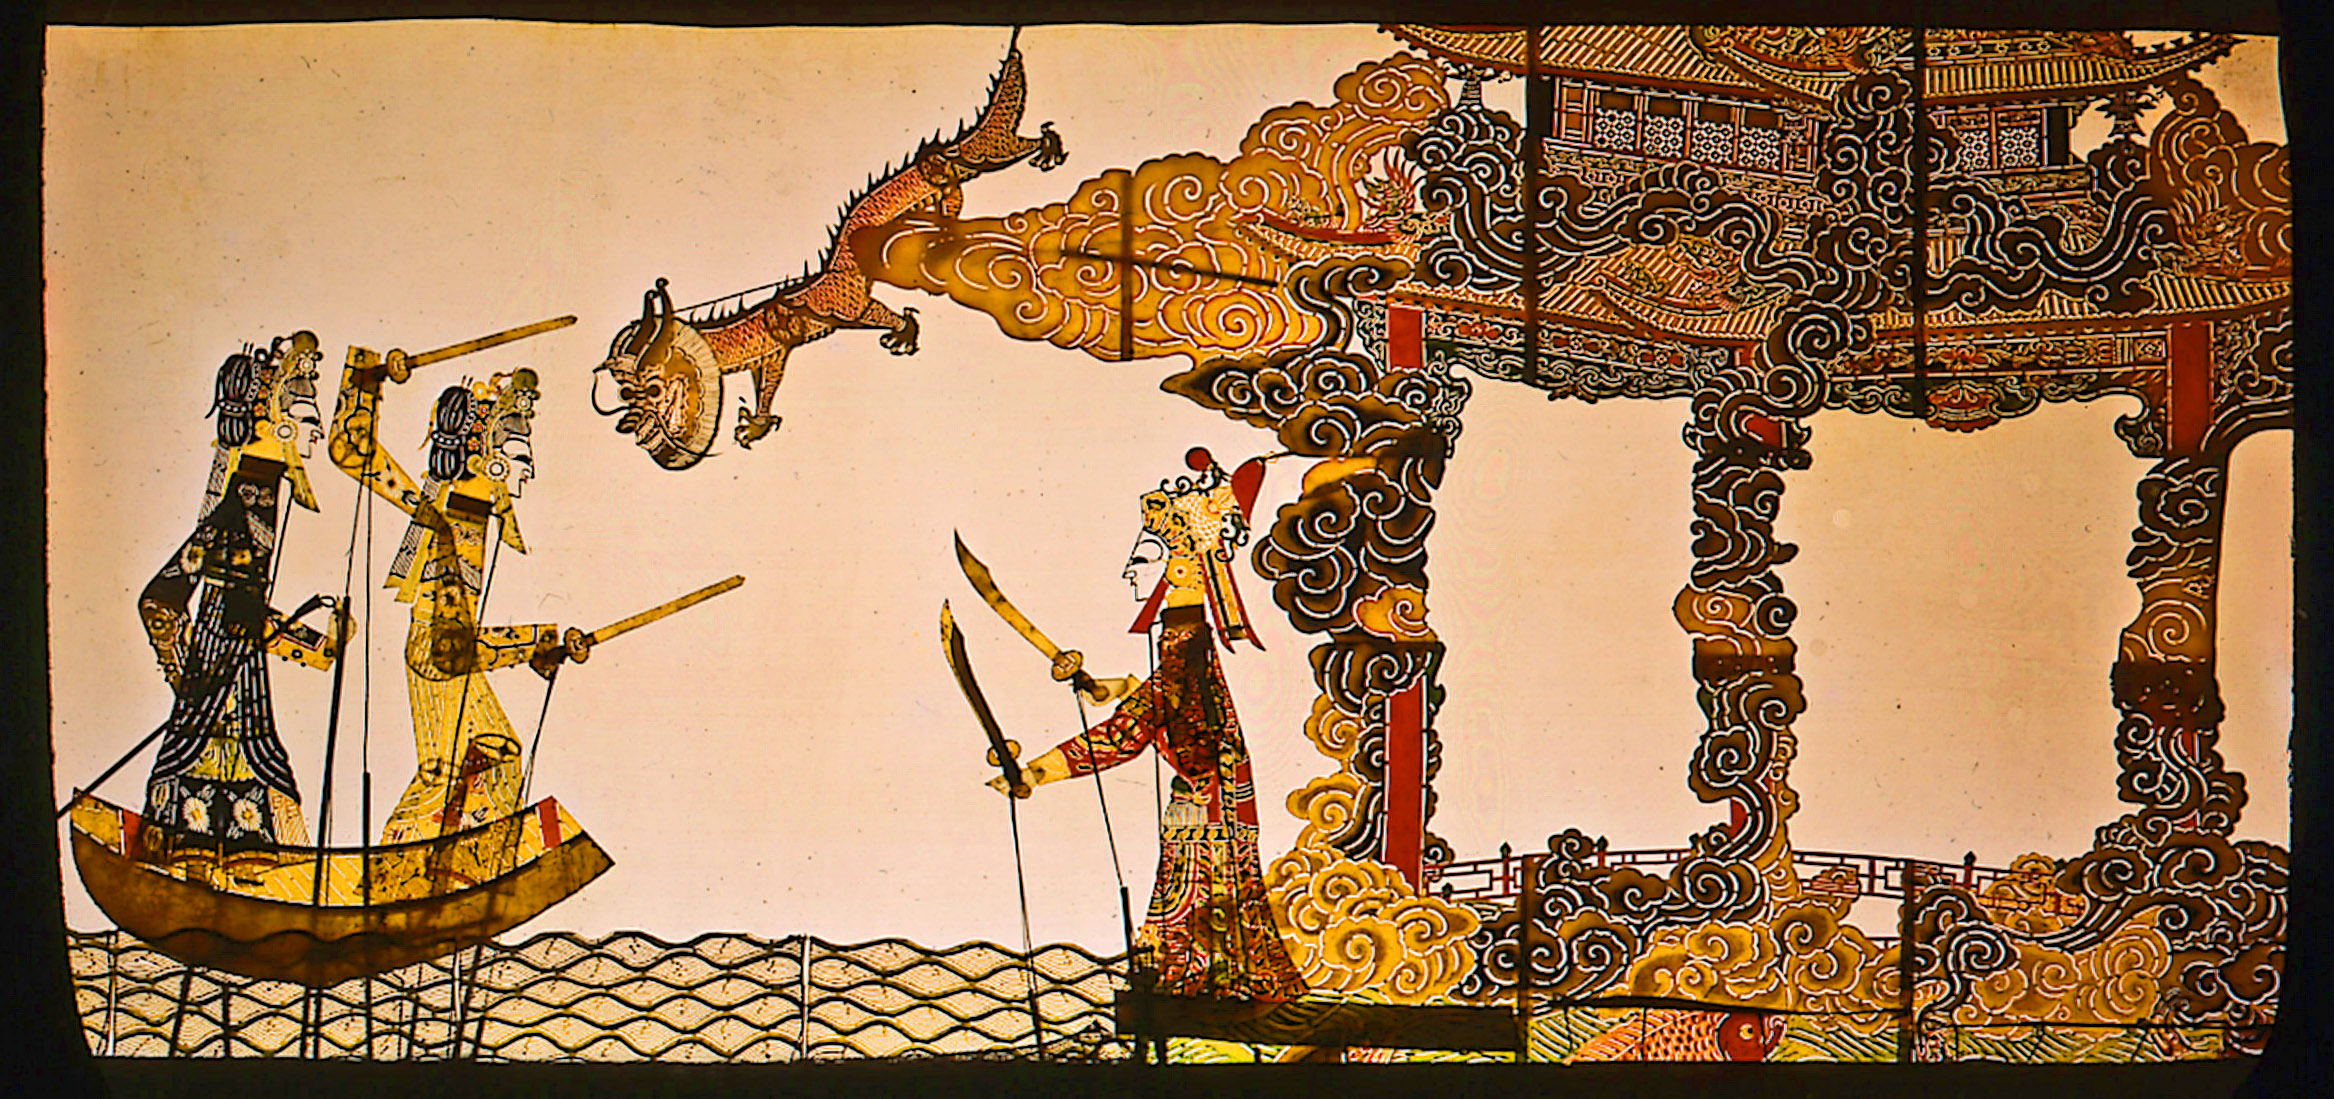 Red Gate: Pauline Benton and Chinese Shadow Theater